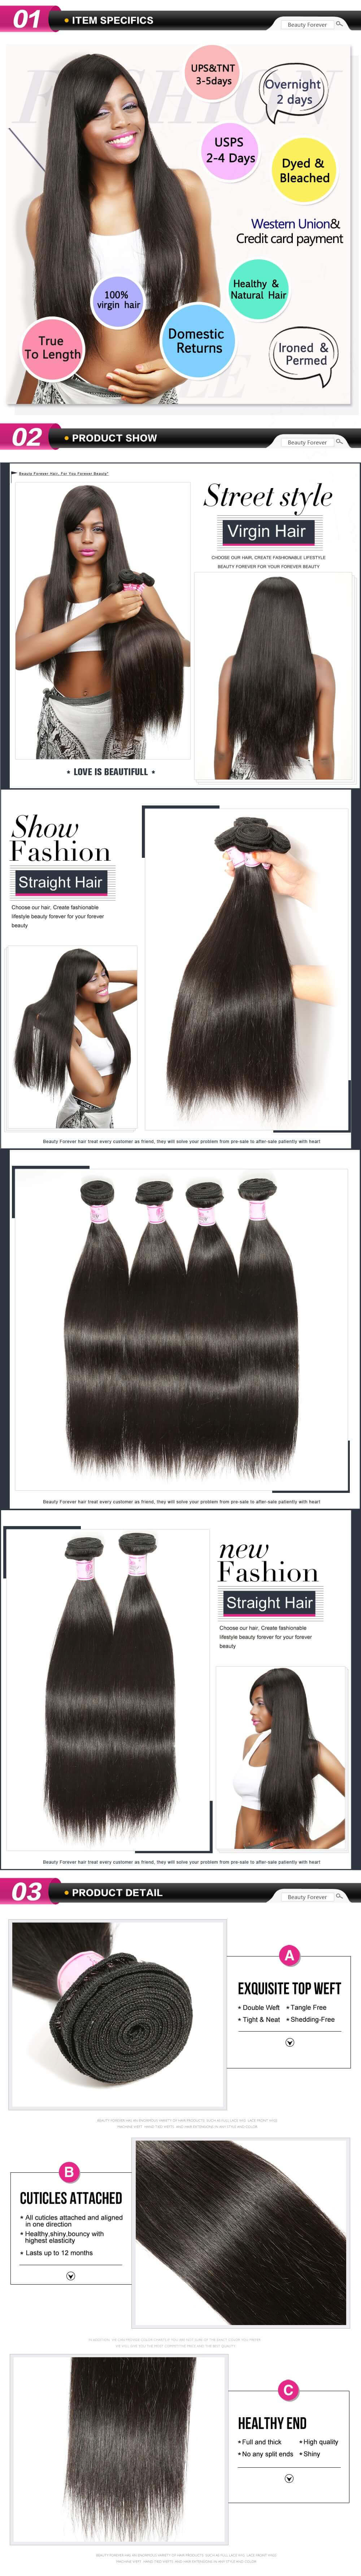 Peruvian straight hair bundles 8-30 inches